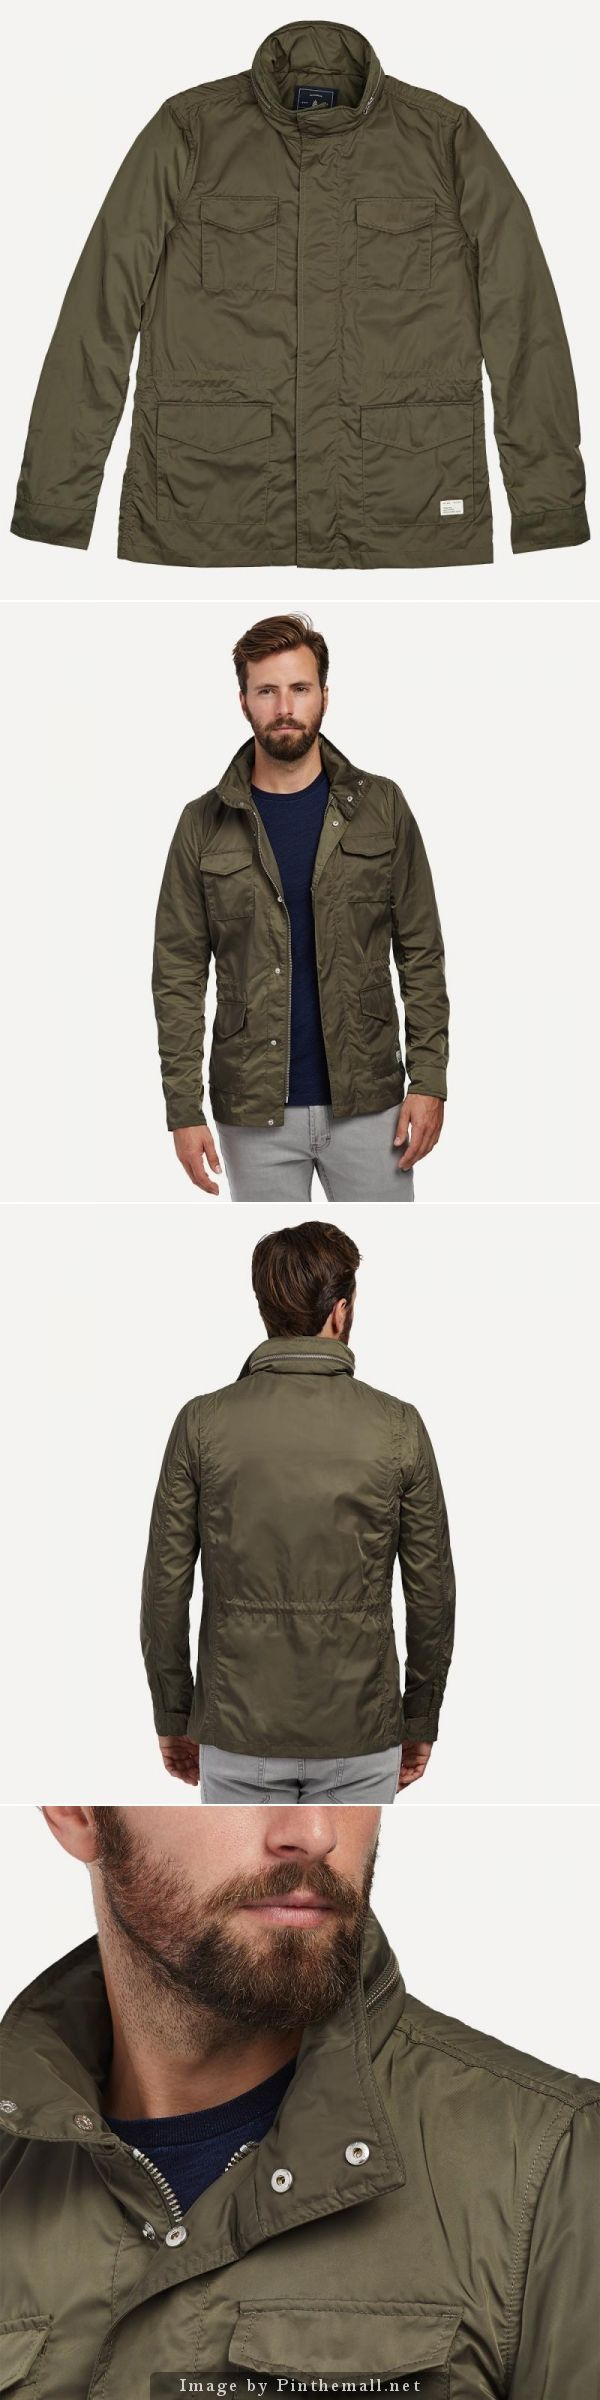 """My Nº. 1 recommended jacket for this fall, the Lightweight Nylon Military Jacket in Ivy - by Frank and Oak. I recently bought this and wear it every chance I get. I'm 6'5"""" and the Large is a perfect fit. The fabric has a great feel, the construction is excellent, and the ivy color is really cool. At $125 it's a great deal for a jacket that you will never want to take off. See more from @frankandoak #mensfashion #fallouterwear #nattyguy"""